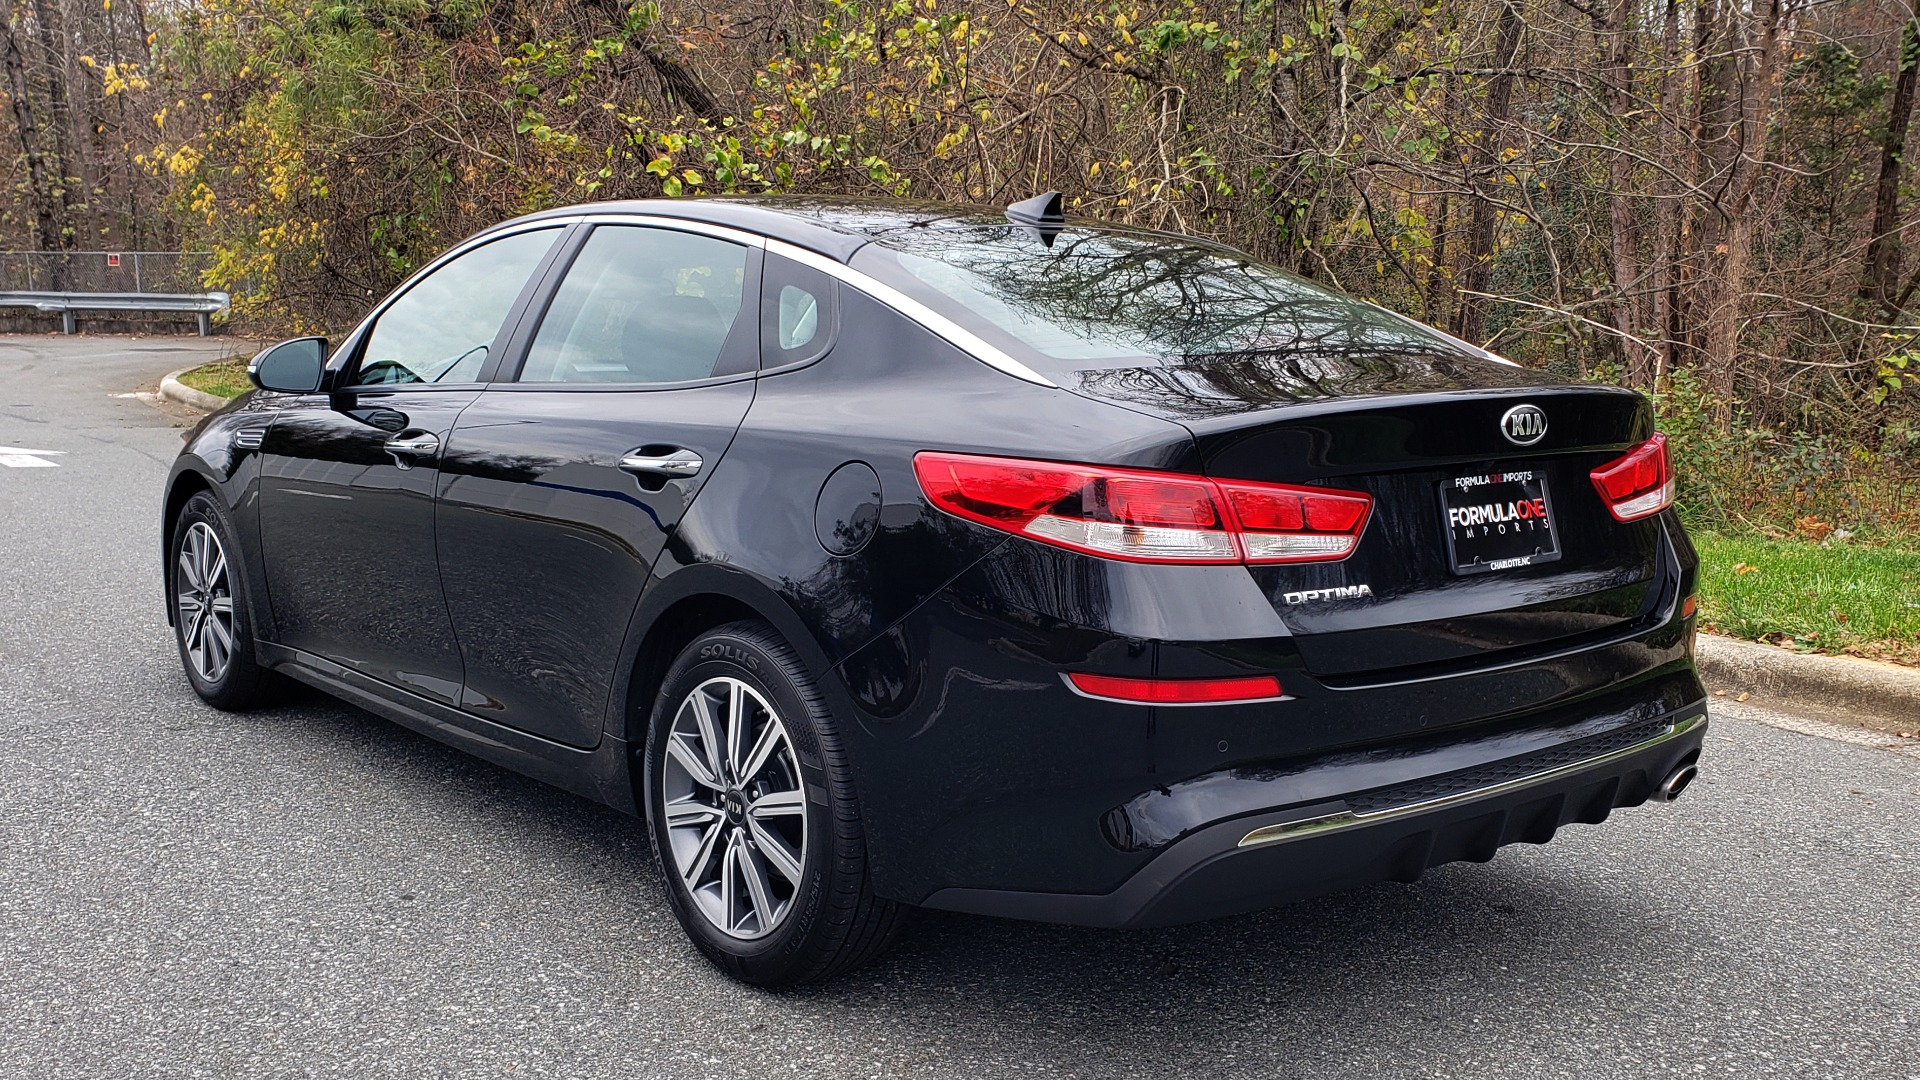 Used 2019 Kia OPTIMA LX AUTO / 2.4L 4-CYL / 6-SPD AUTO / REARVIEW / LOW MILES for sale $17,995 at Formula Imports in Charlotte NC 28227 3